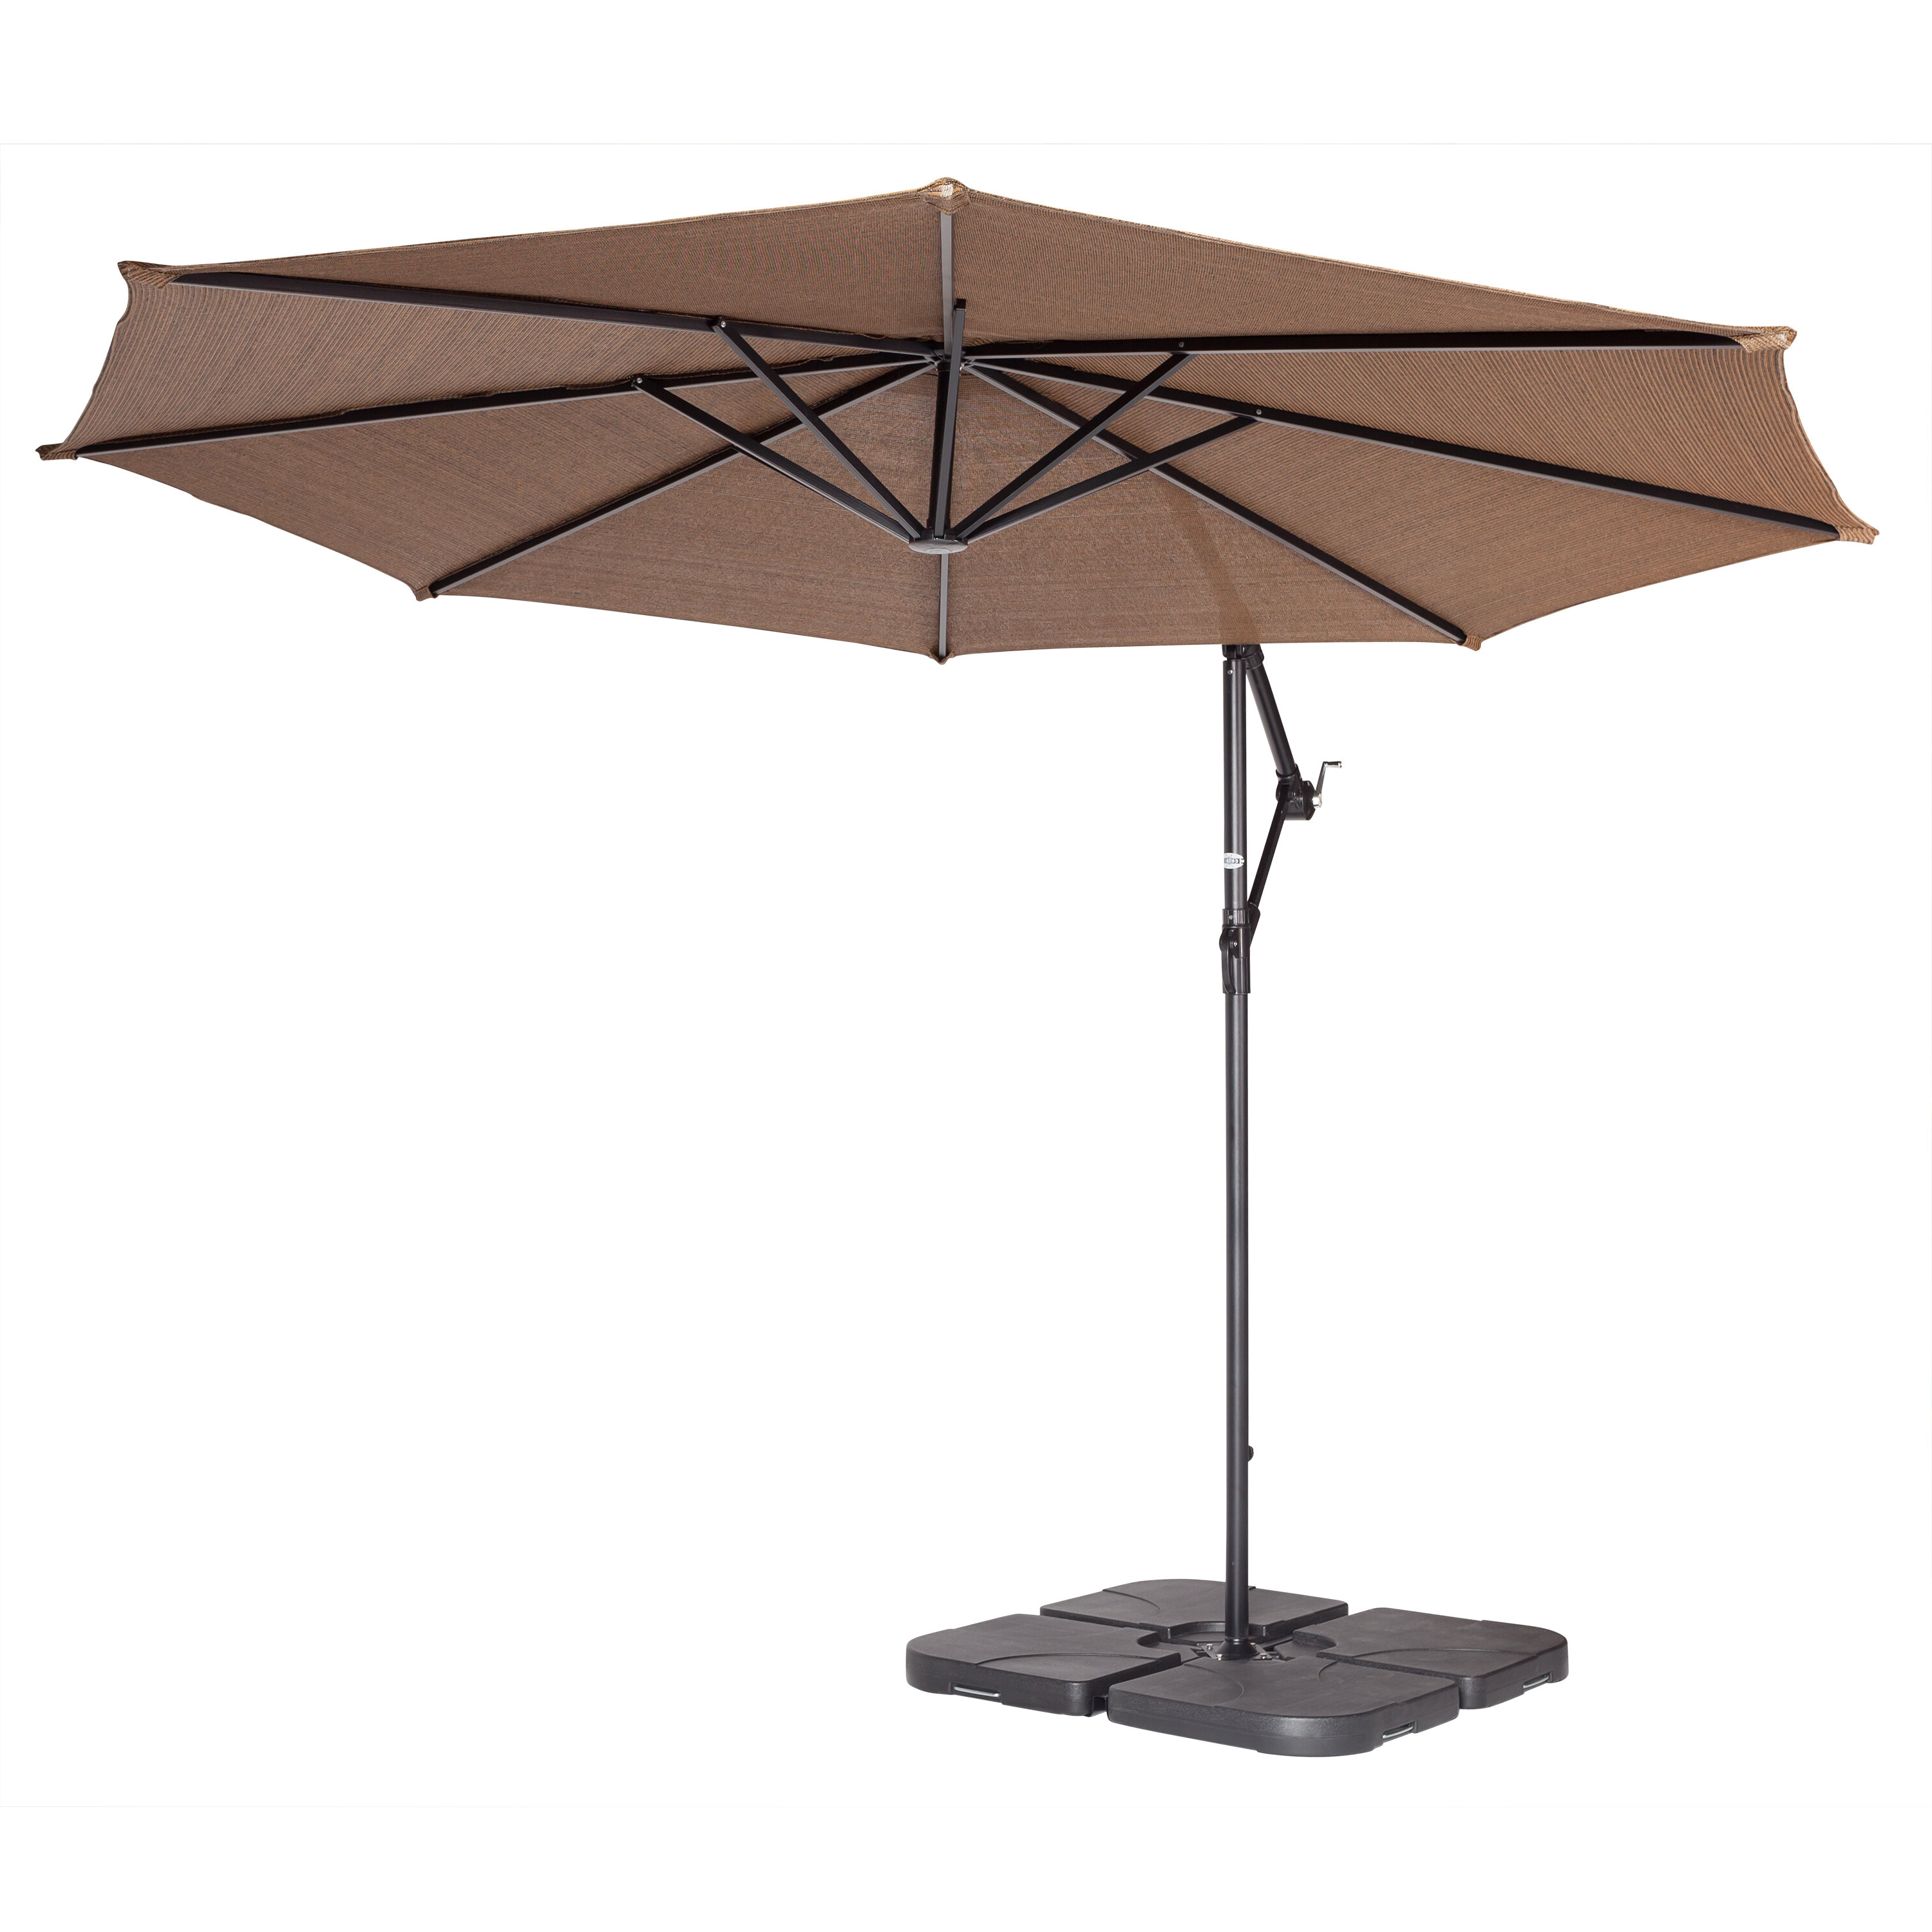 Current Coolaroo Coolaroo 10' Cantilever Umbrella Intended For Coolaroo Cantilever Umbrellas (View 11 of 20)